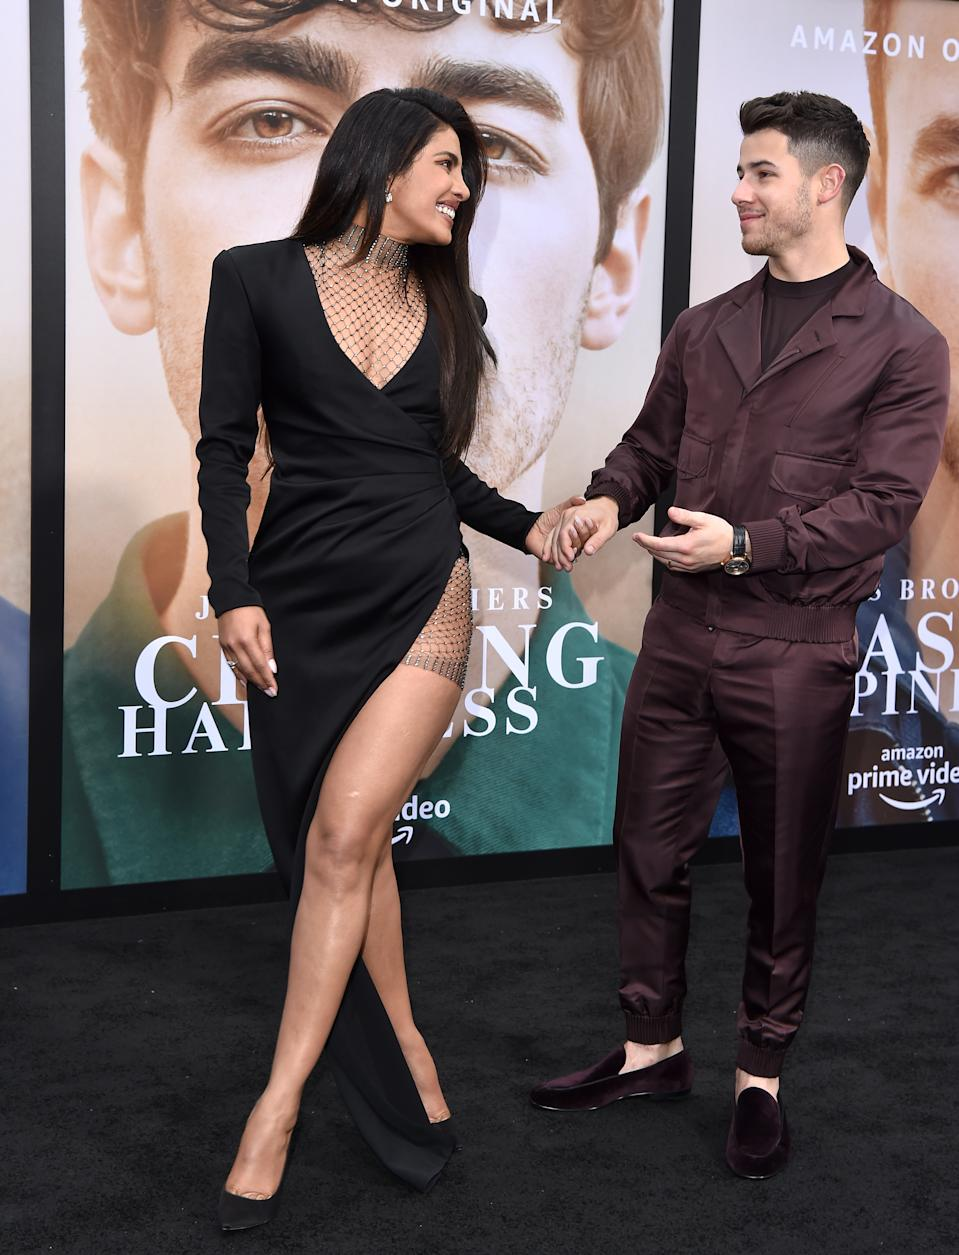 Priyanka took the thigh-high split trend to the next level in this black gown. Meanwhile husband Nick dressed down in a burgundy look by Ermenegildo Zegna.<em> [Photo: Getty]</em>